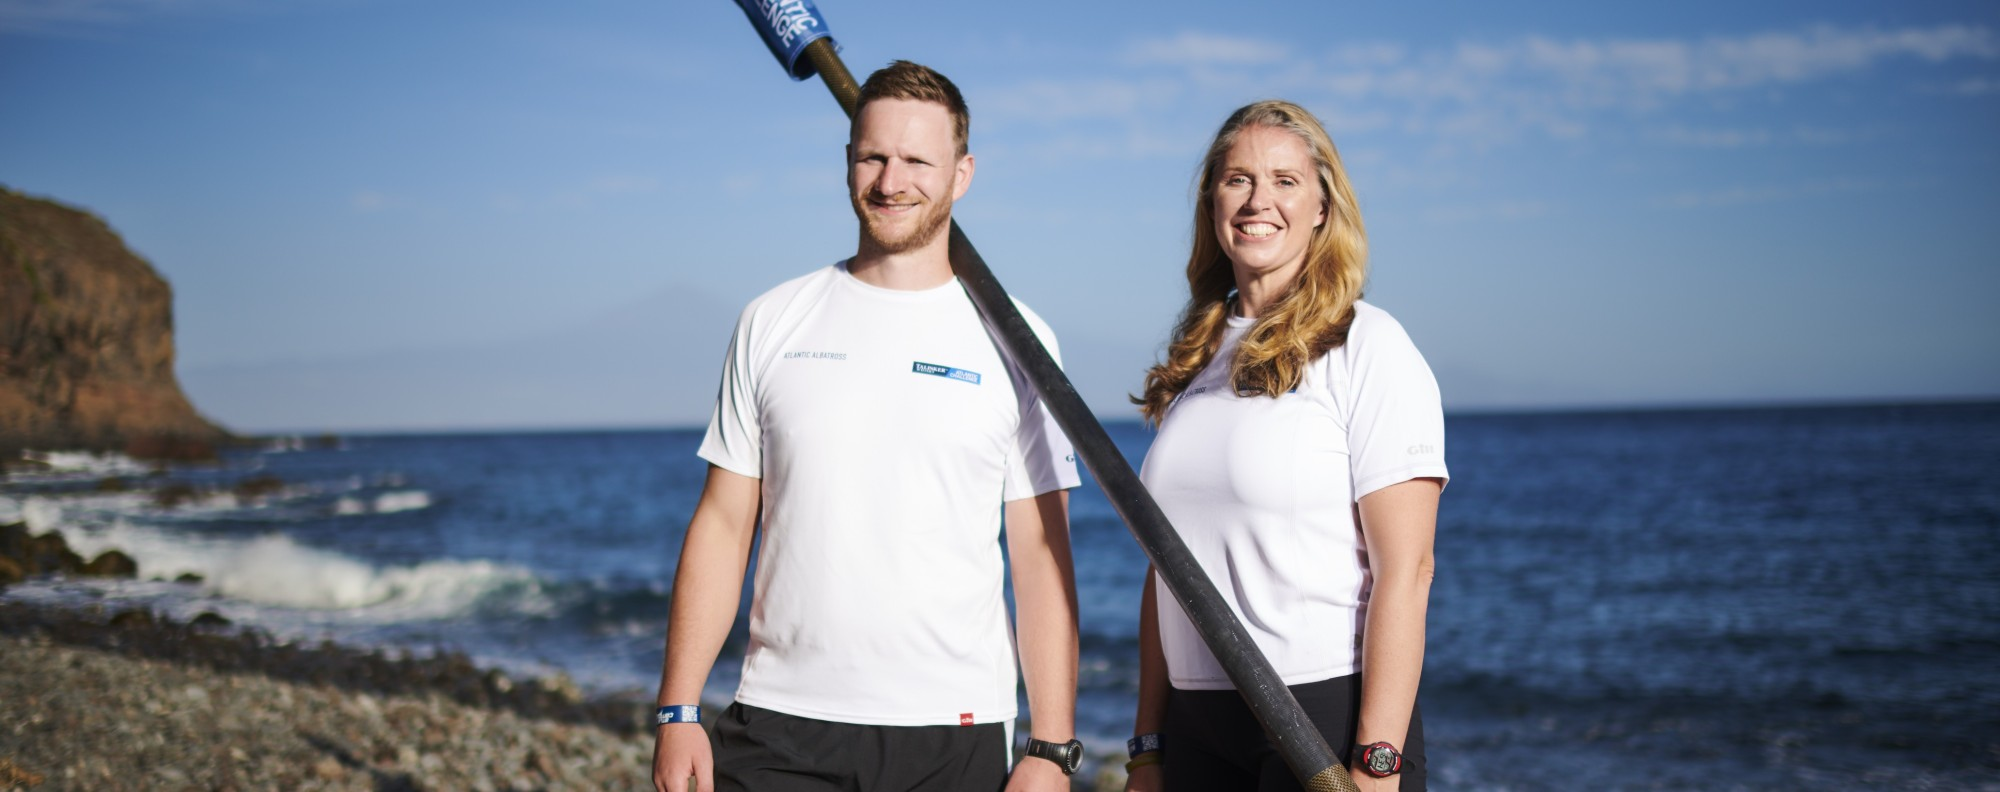 Mark Agnew and Lizzie Gill are hours away from starting their challenge to tackle the Talisker Whisky Atlantic Challenge. Photo: Handout